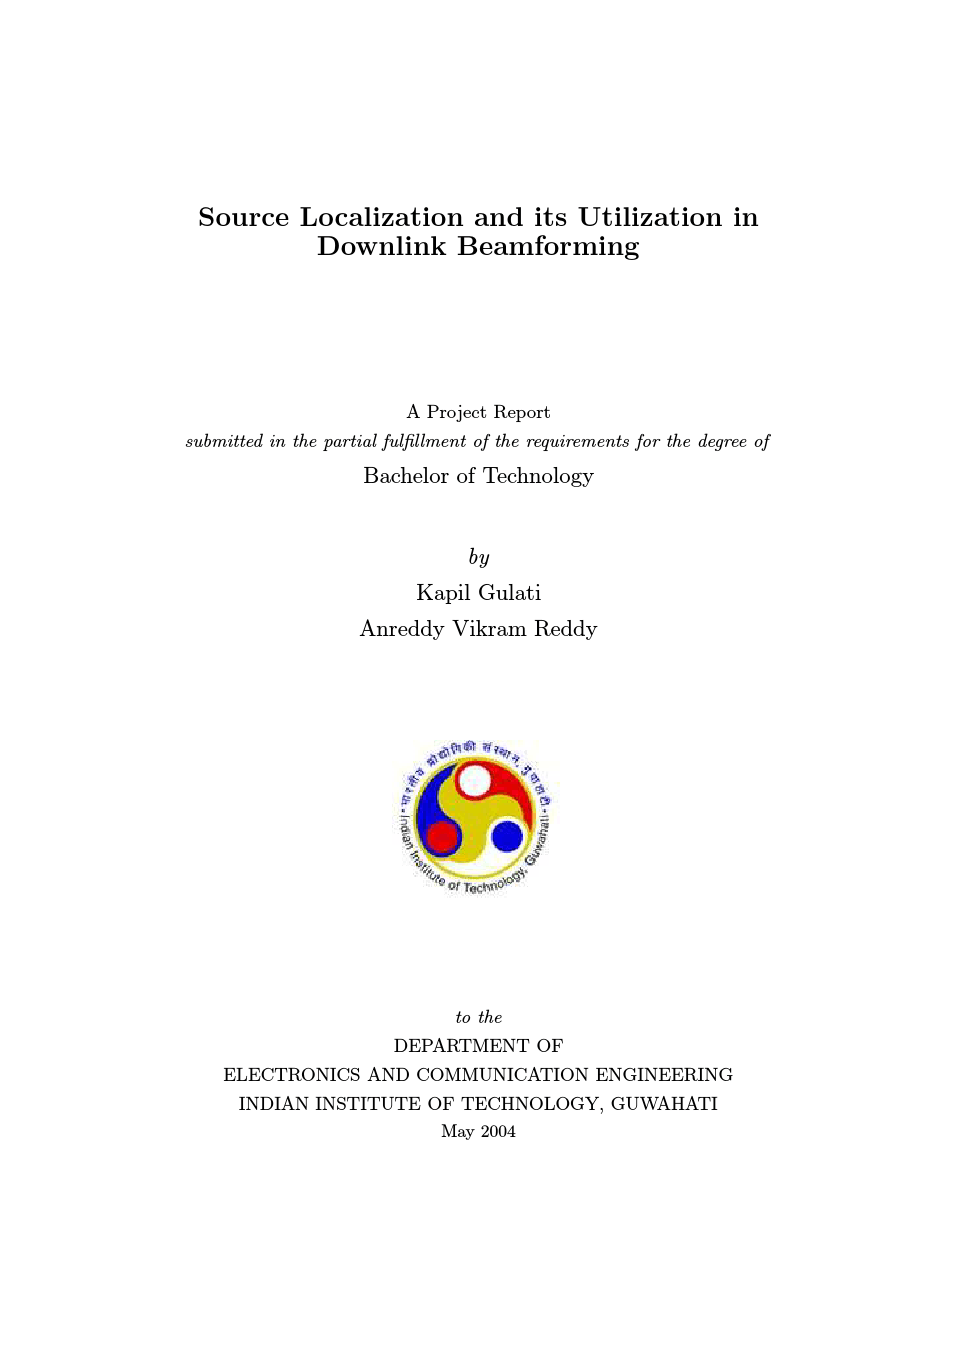 """calization and its Utilization in Downlink Beamforming """" by Anreddy Vikram"""